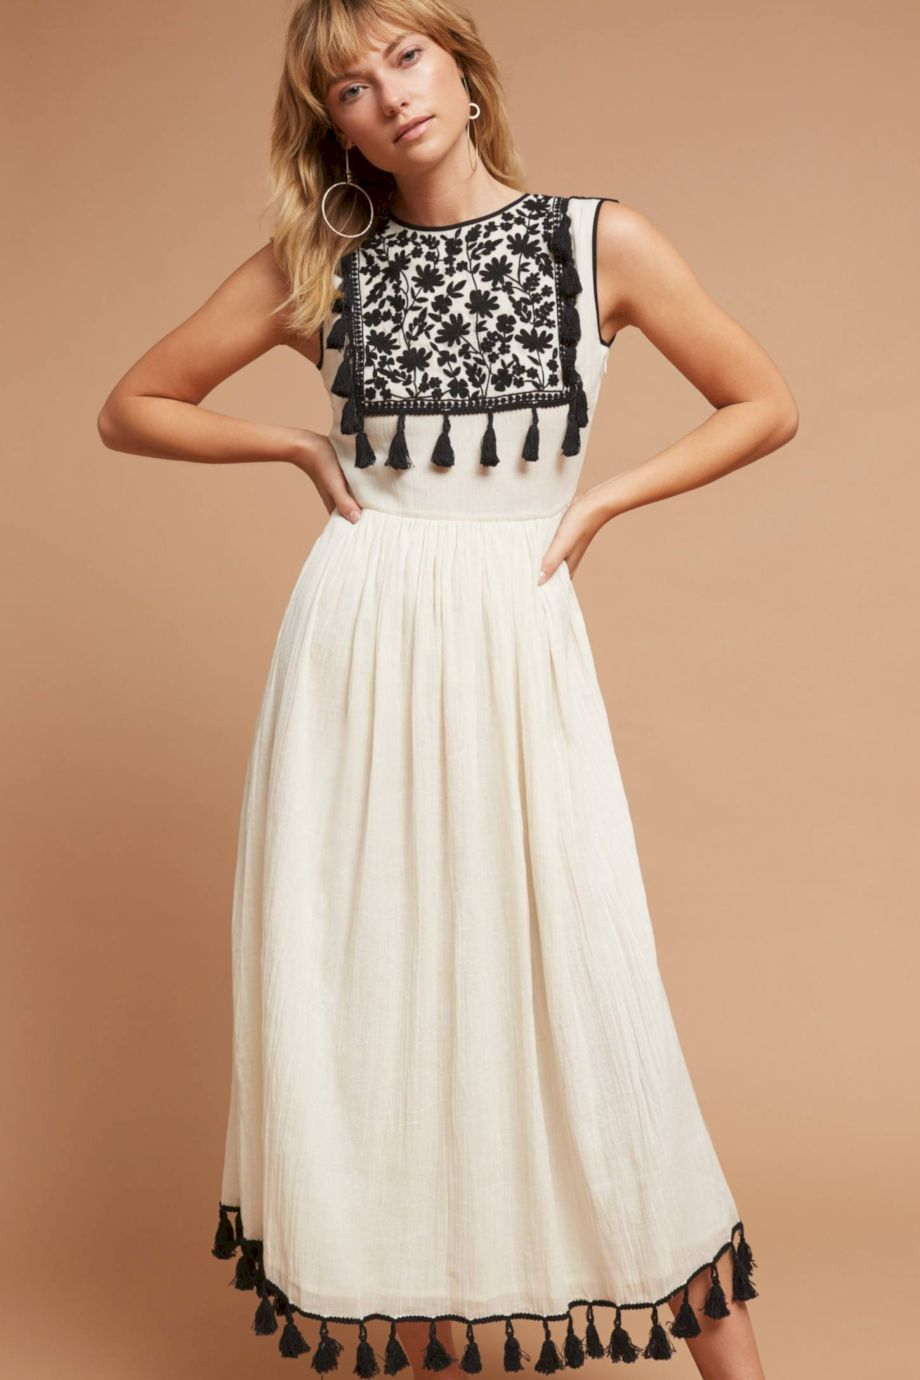 Formal midi dresses outfits 54